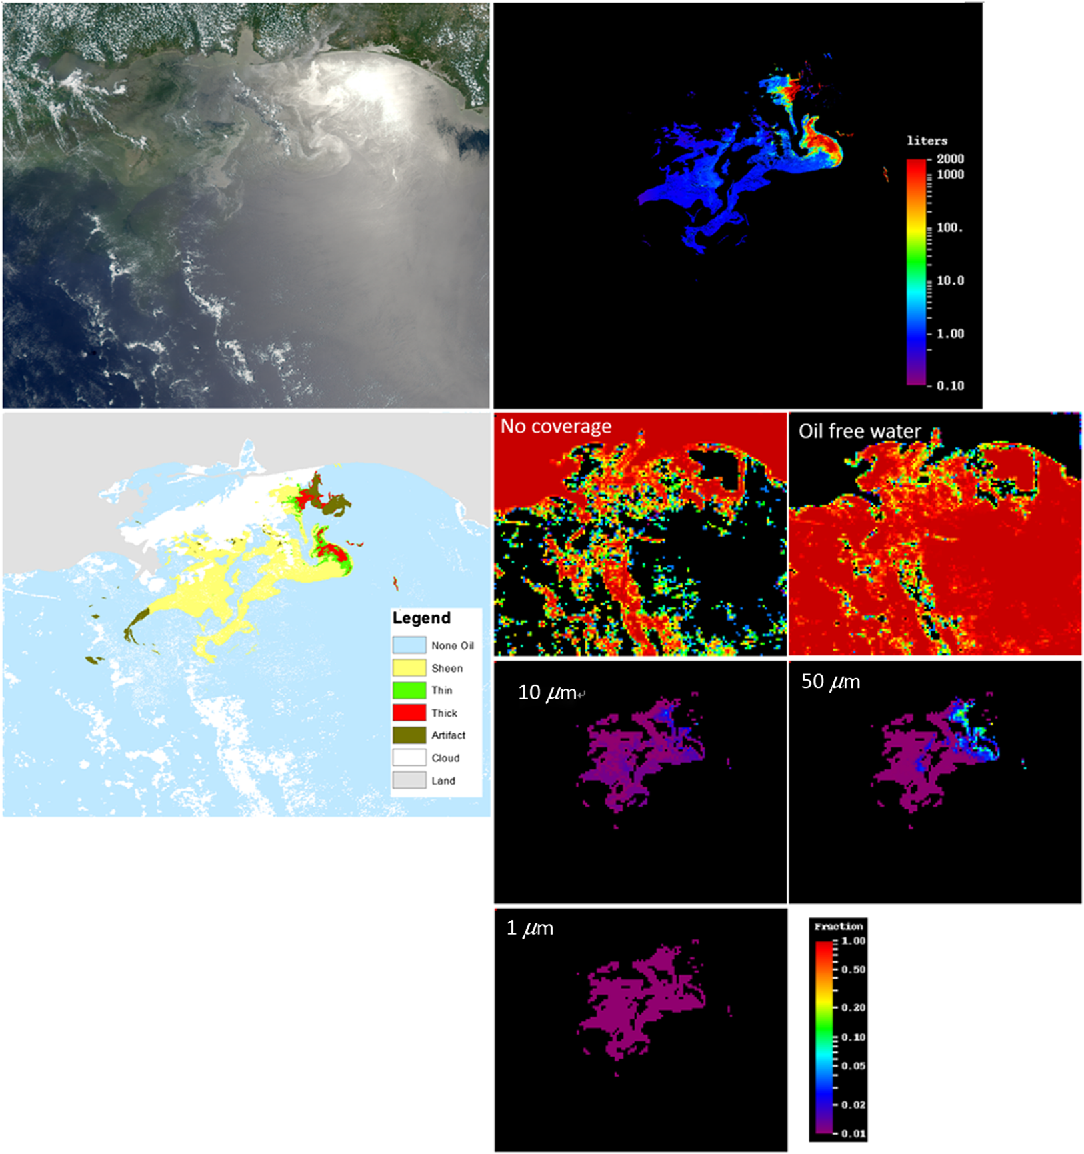 Remote sensing estimation of surface oil volume during the 2010